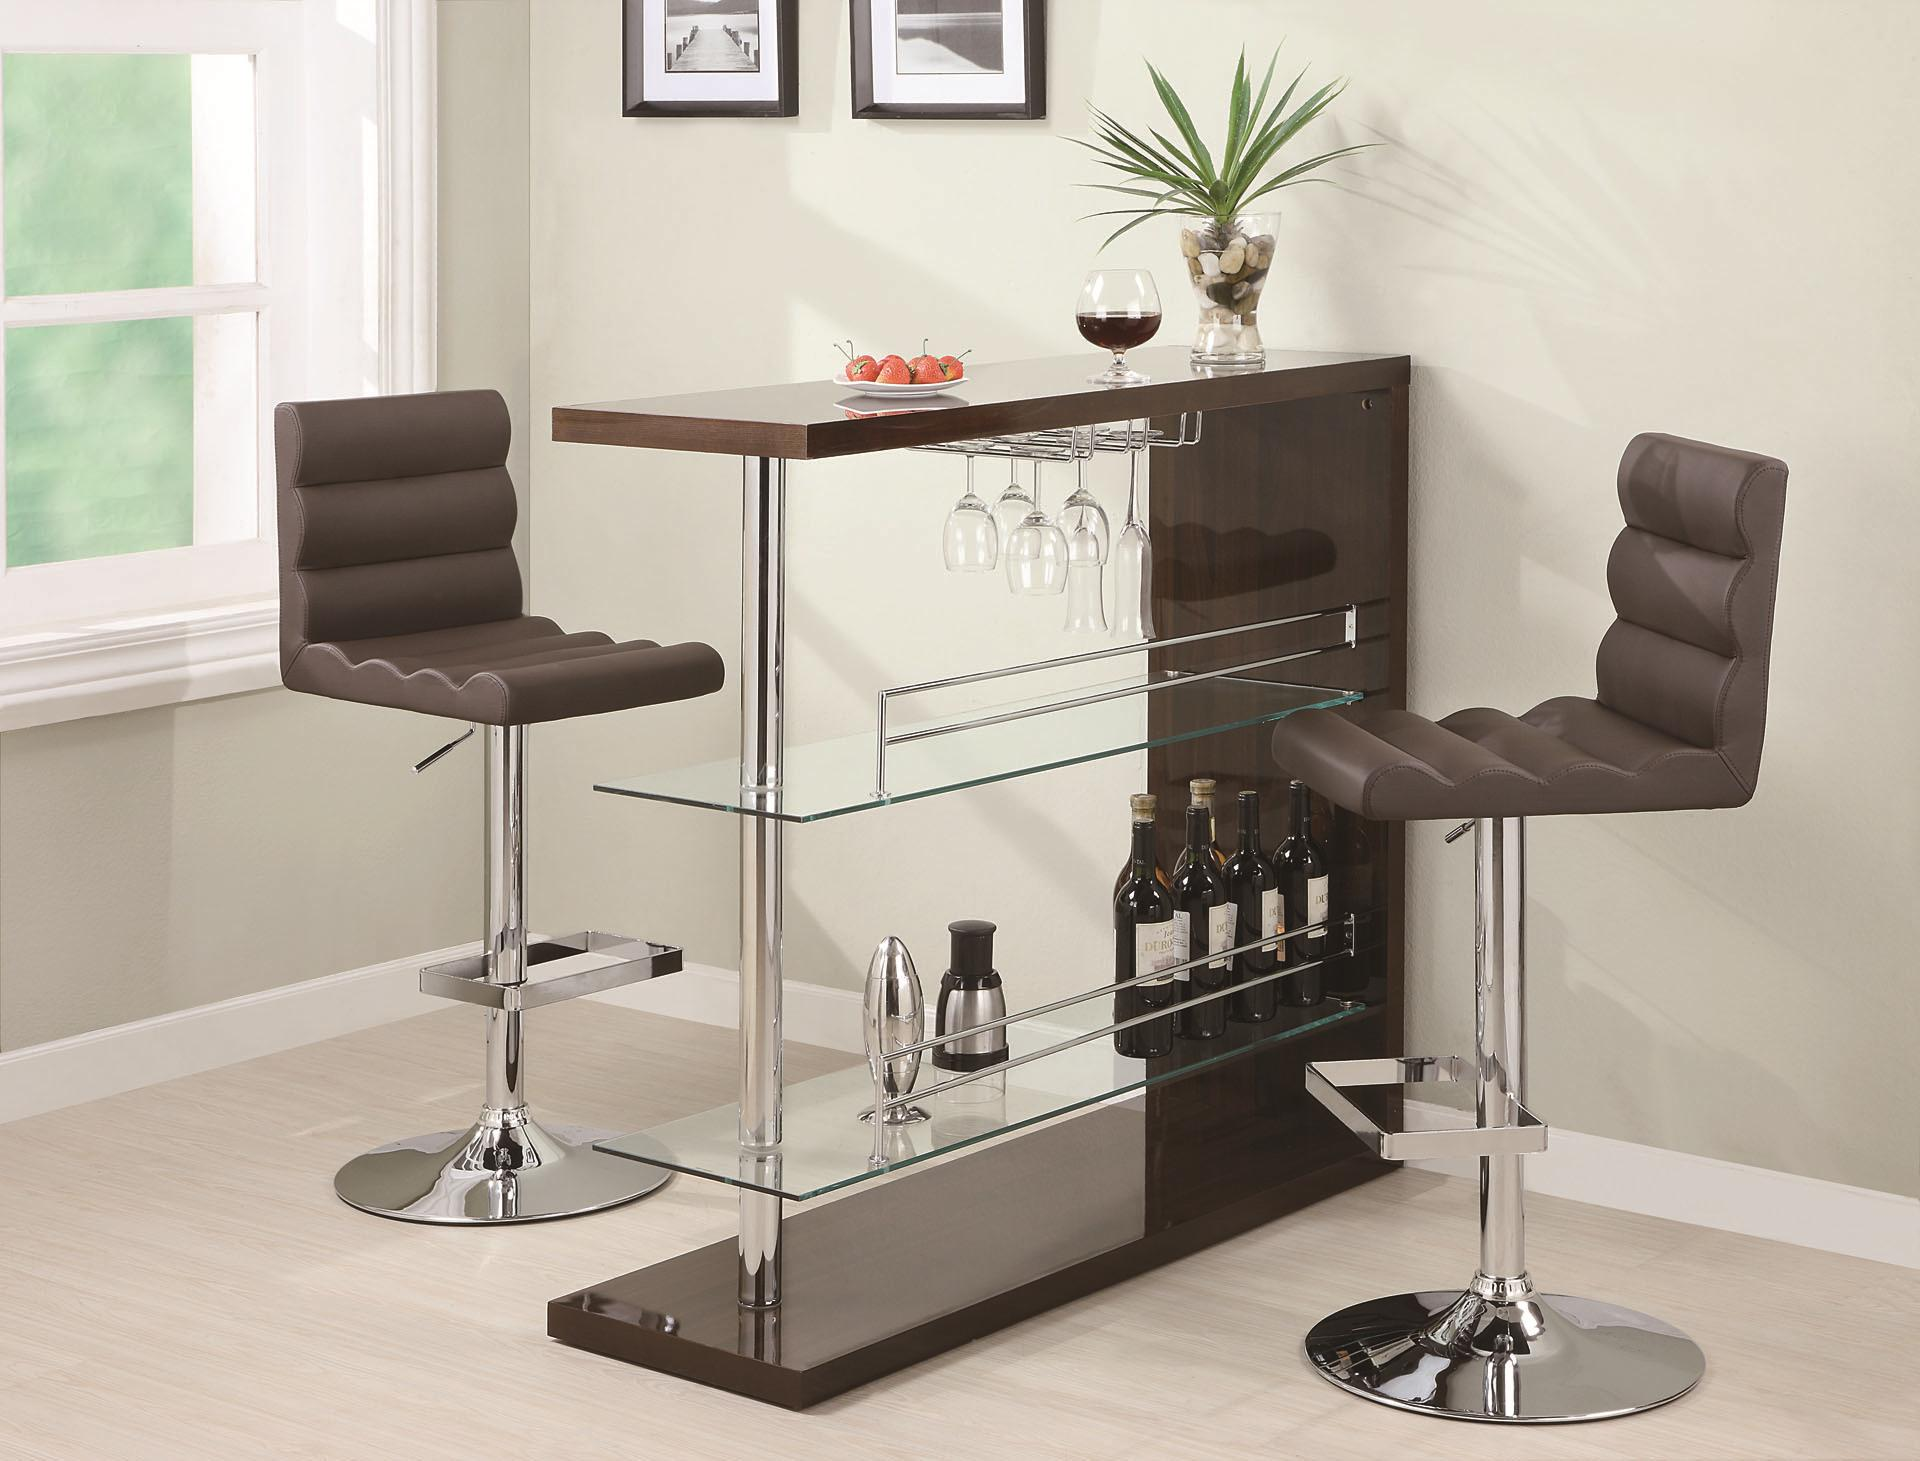 Coaster Bar Units and Bar Tables Contemporary Bar Set with Stools - Item Number: 100166+2x120355